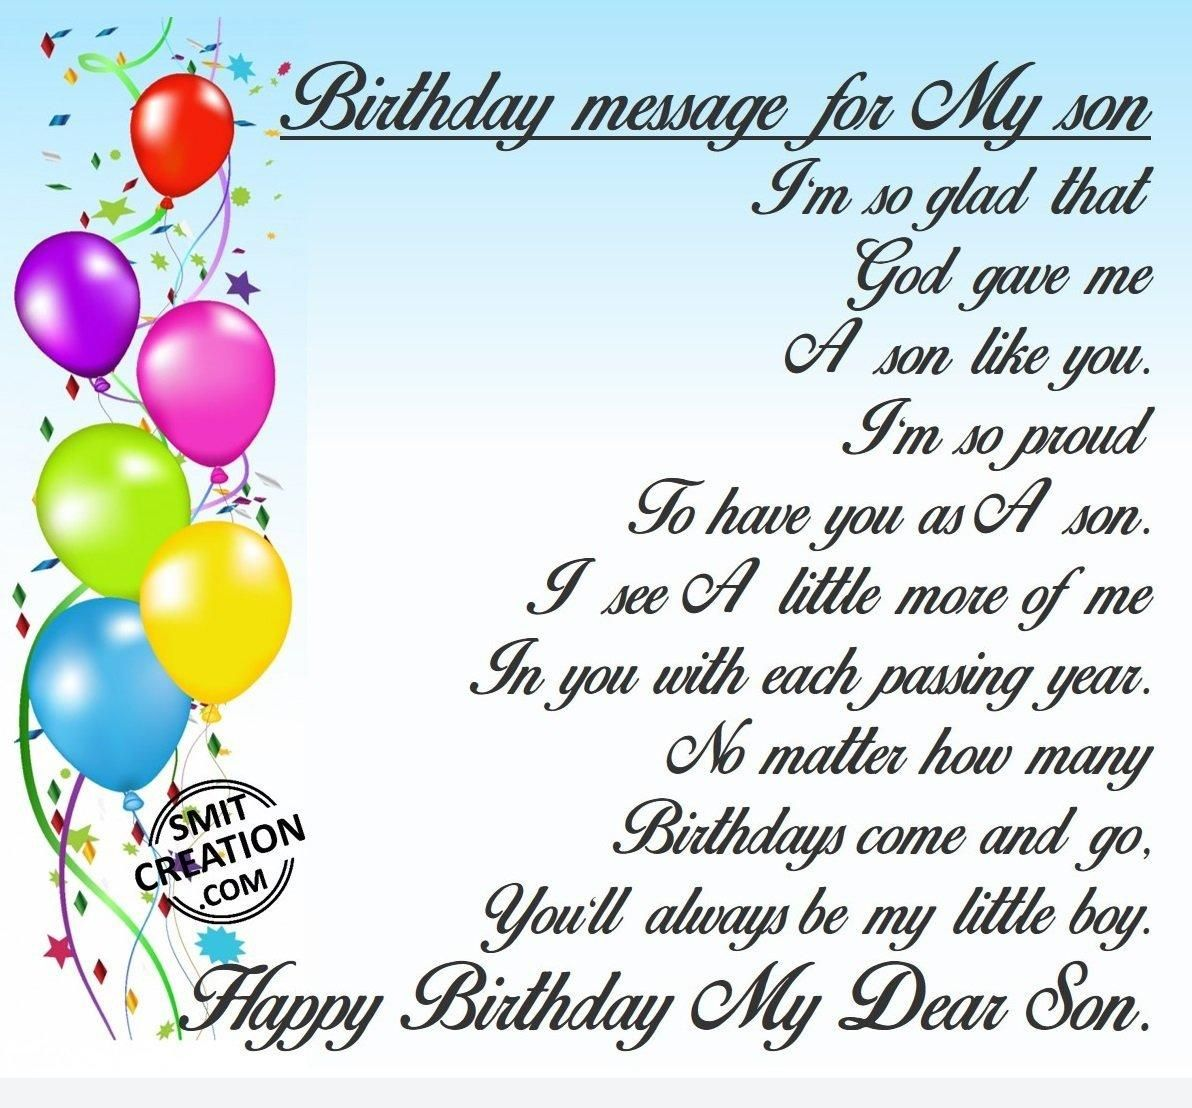 Birthday Wishes For Sons ~ Birthday wishes for facebook son message my smitcreation